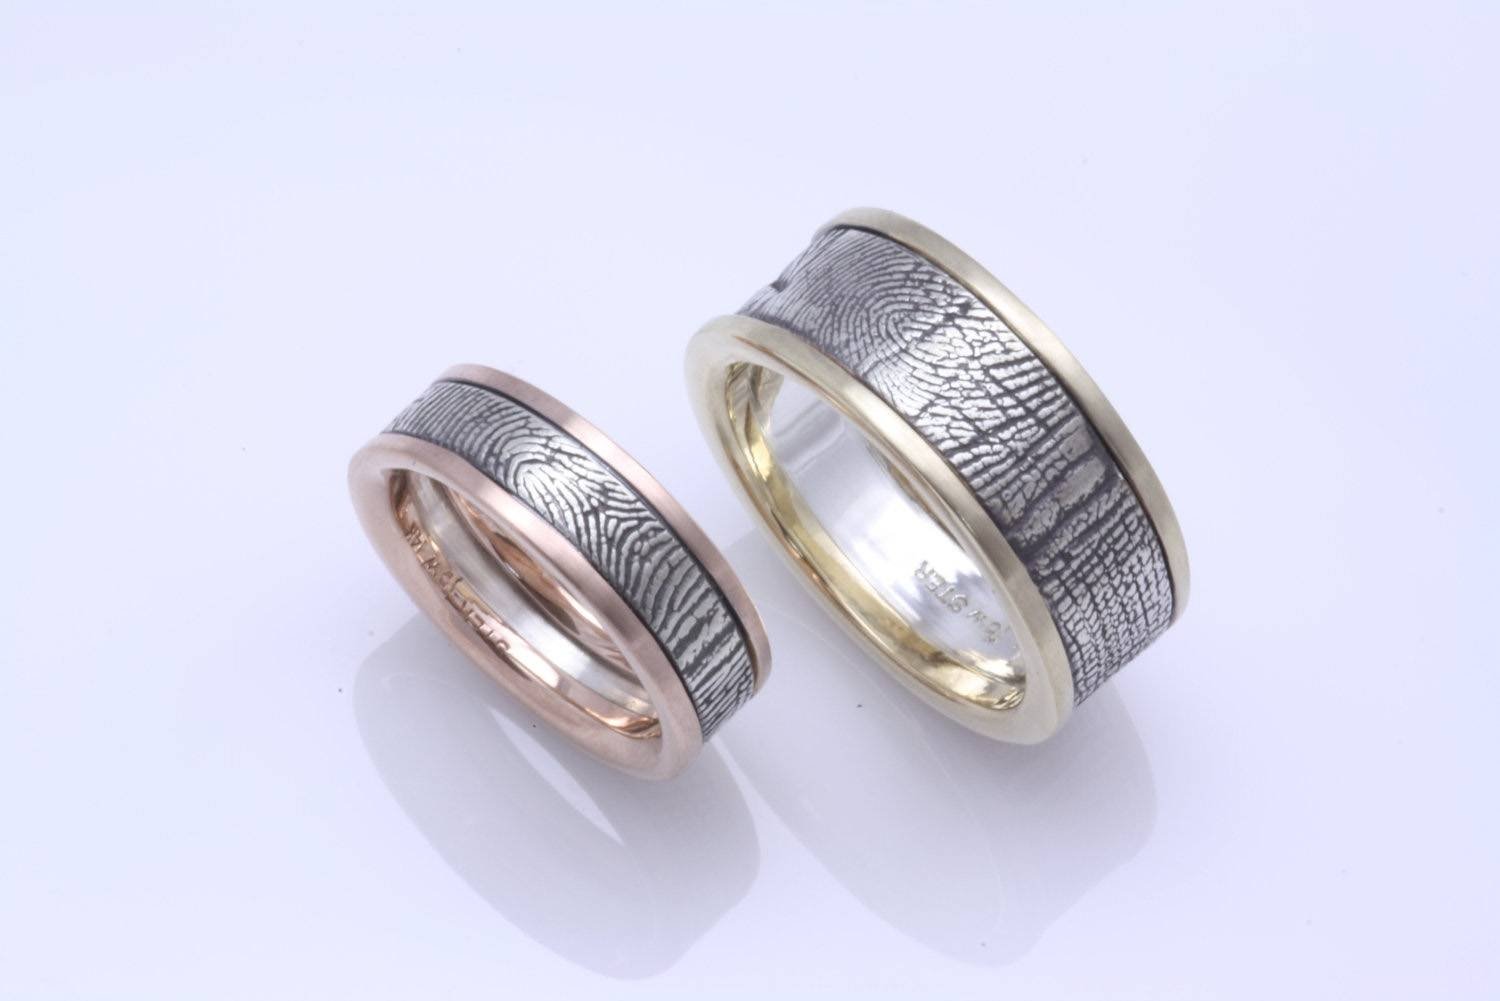 Fabulous Wedding Bands With Fingerprint | General Valentine Inside Fingerprint Wedding Bands (View 8 of 15)